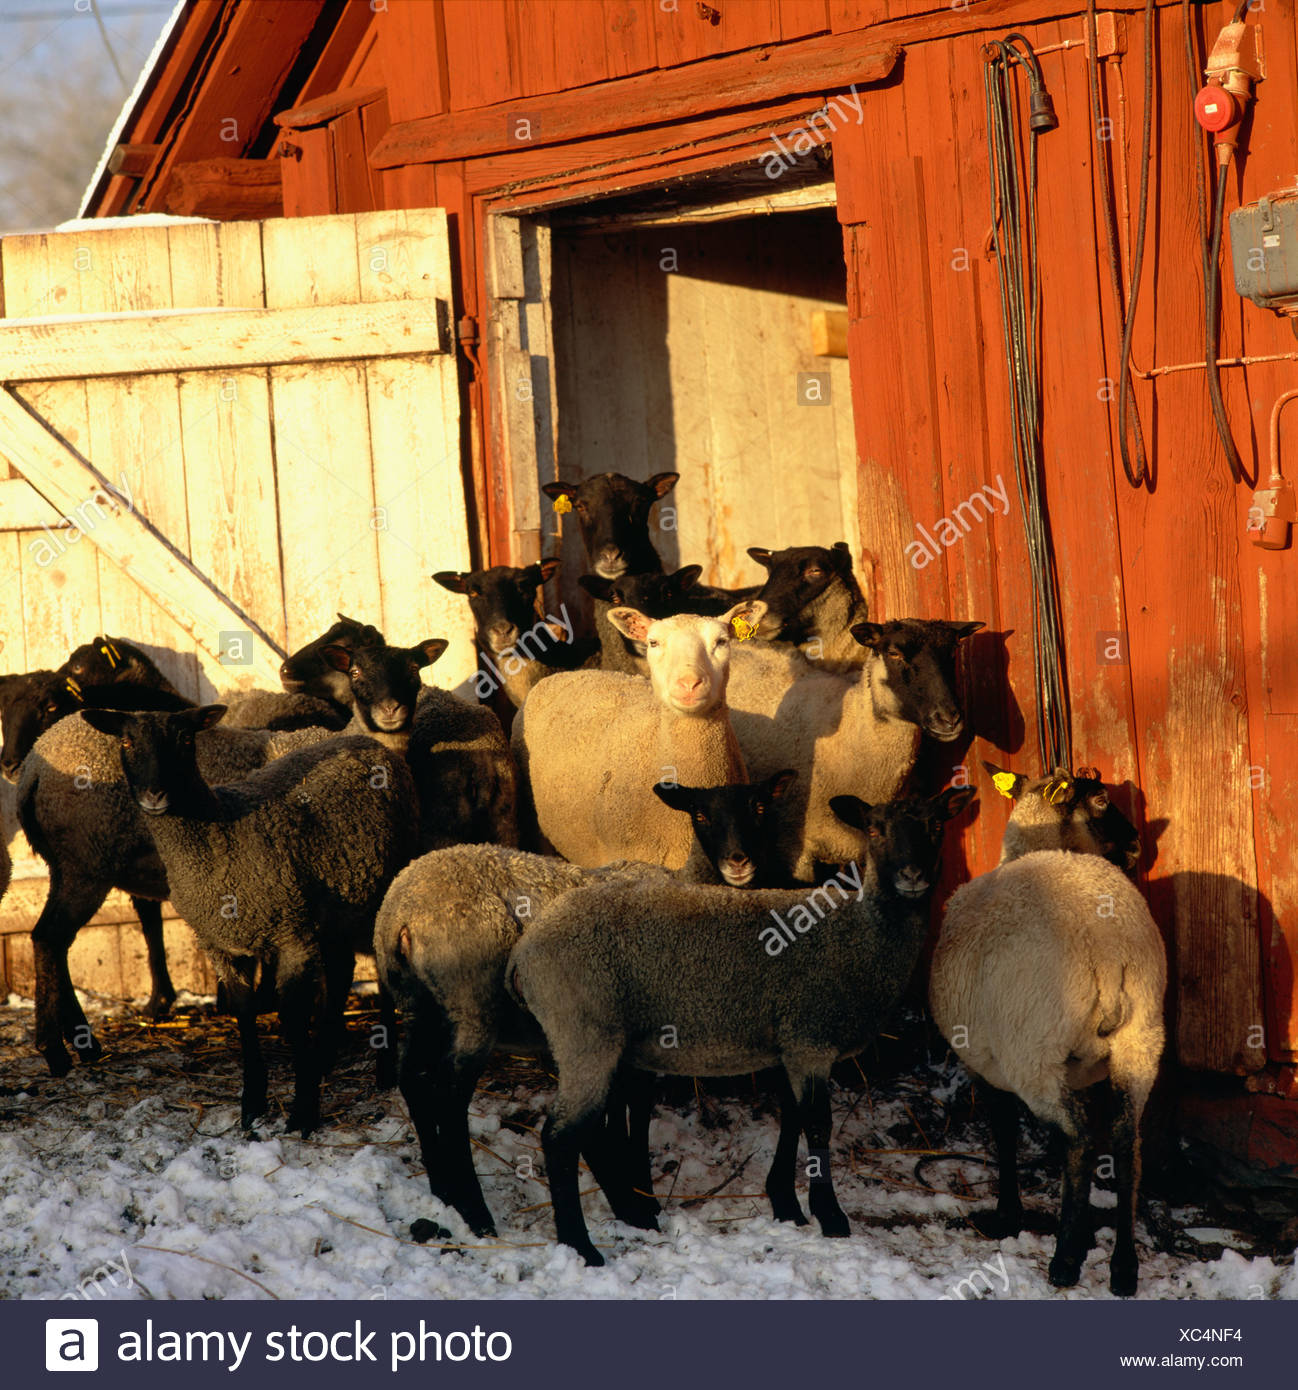 Sheep at a farm, Sweden. - Stock Image